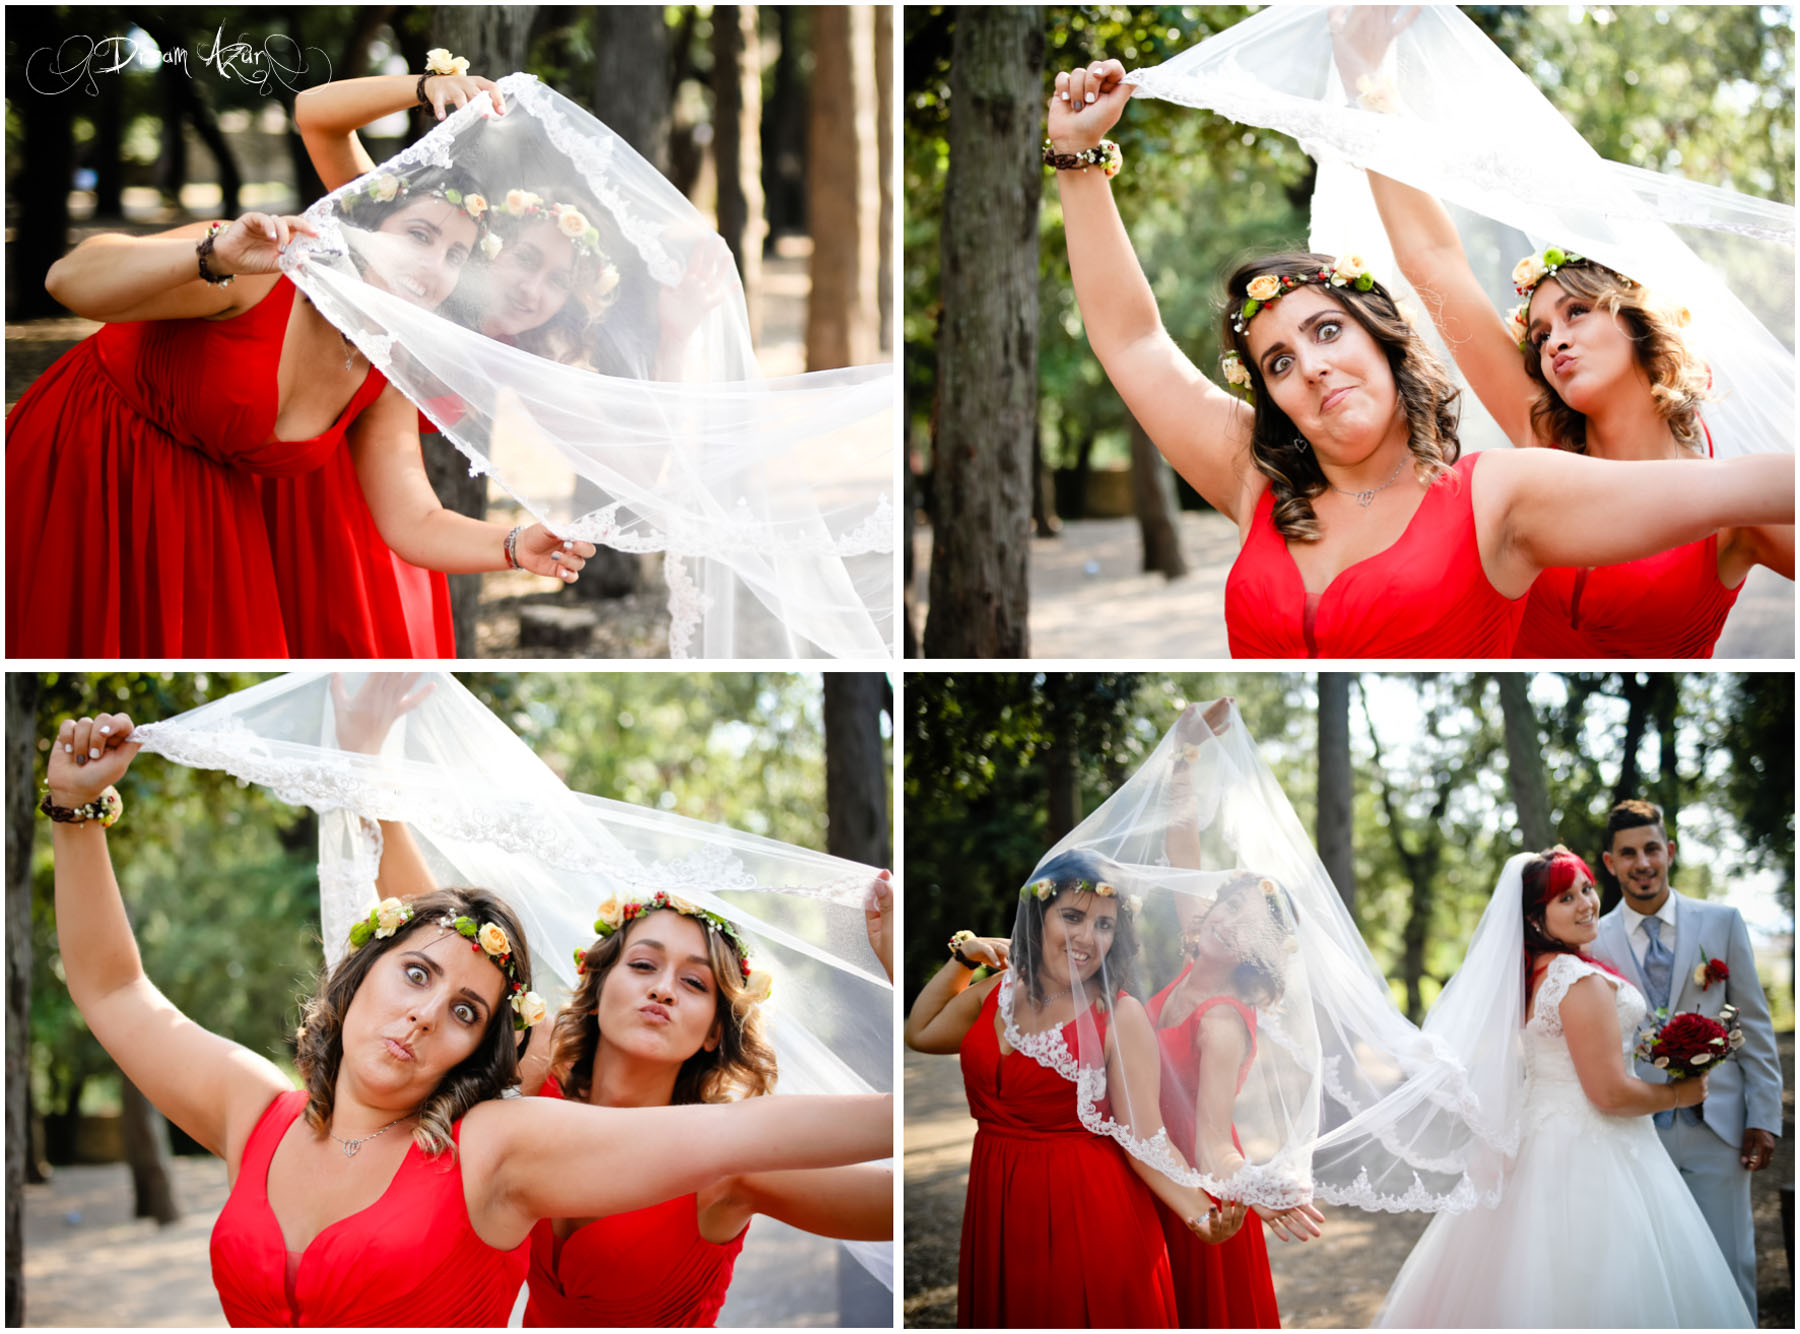 190824COMPO-Mariage-Cindy-et-Anthony-63